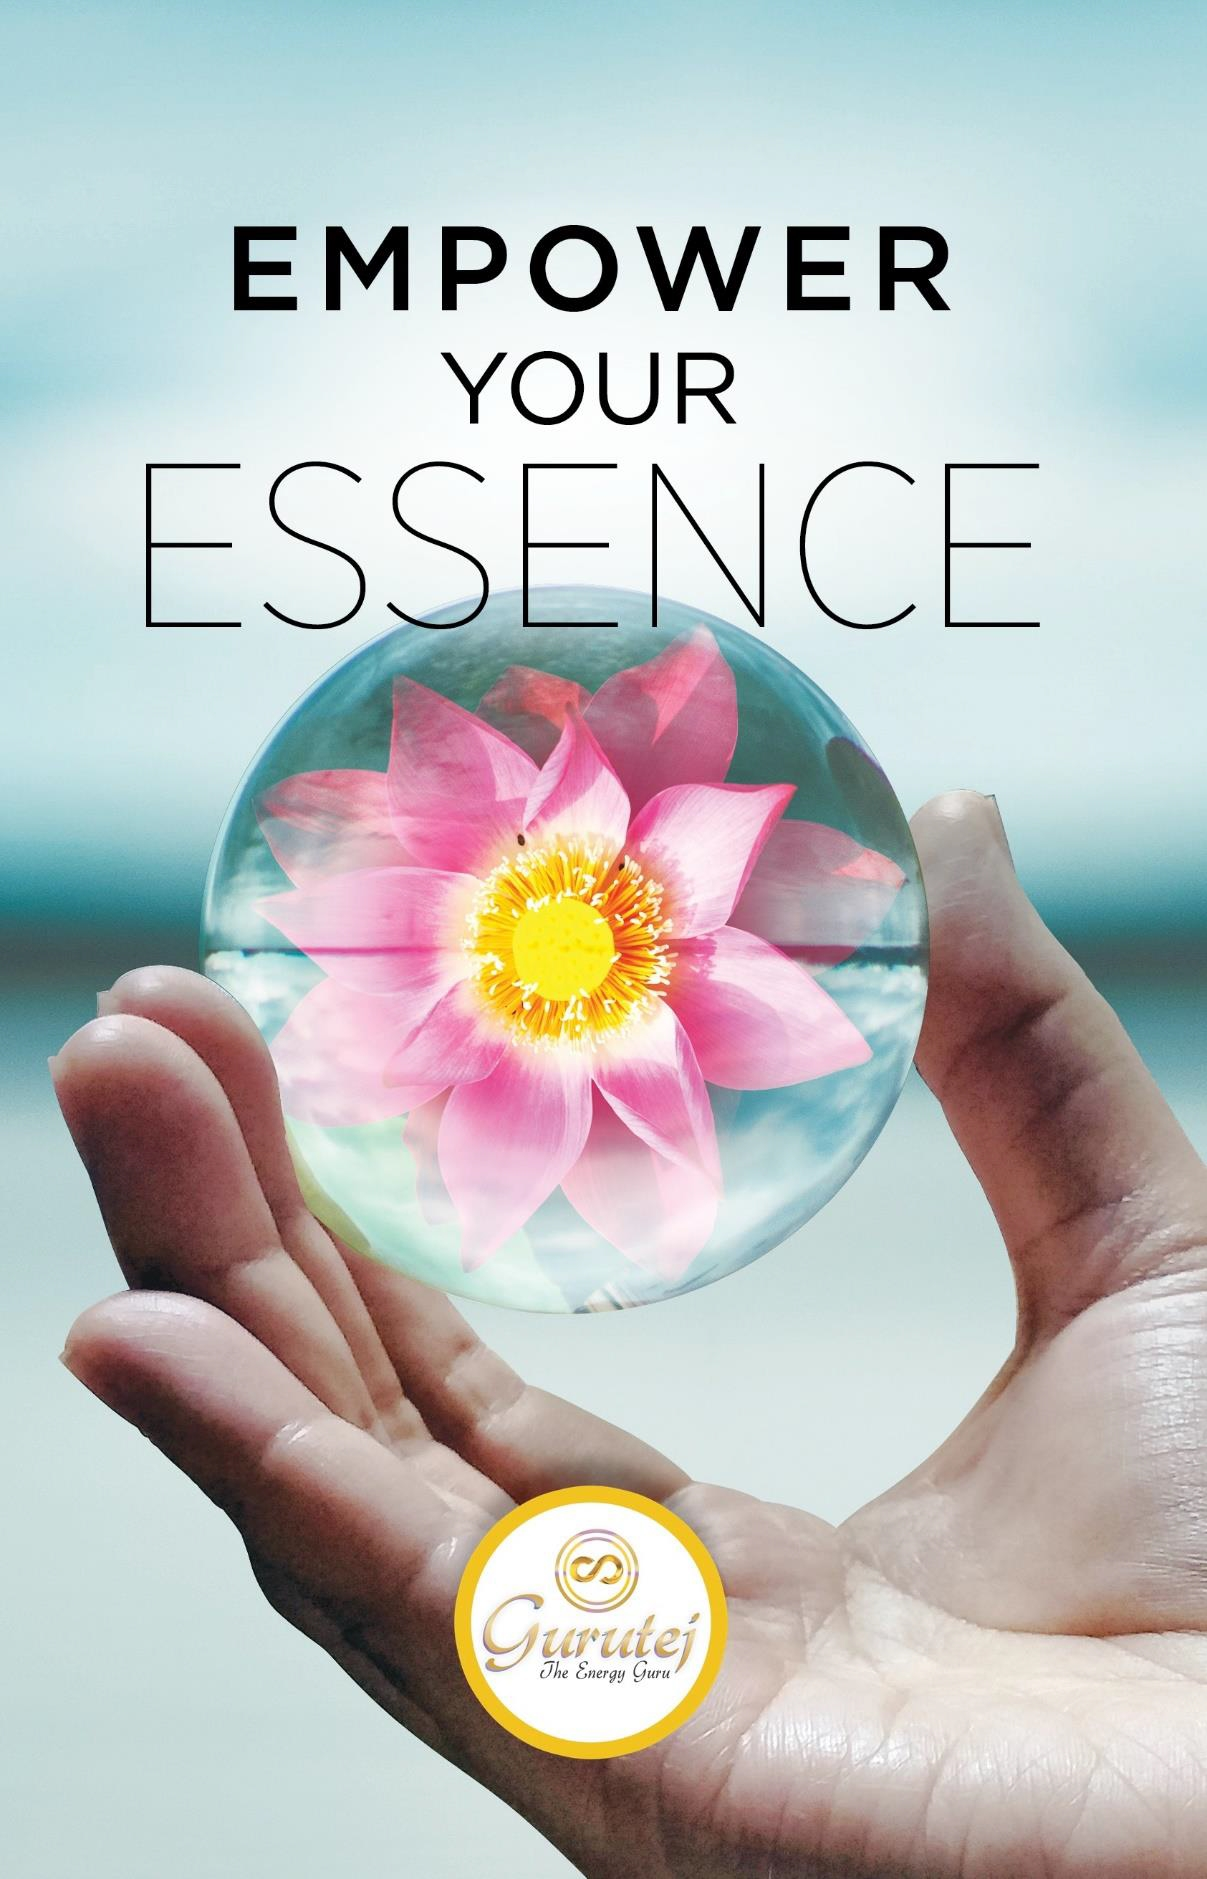 Empower Your Essence by Gurutej Khalsa (eBook)